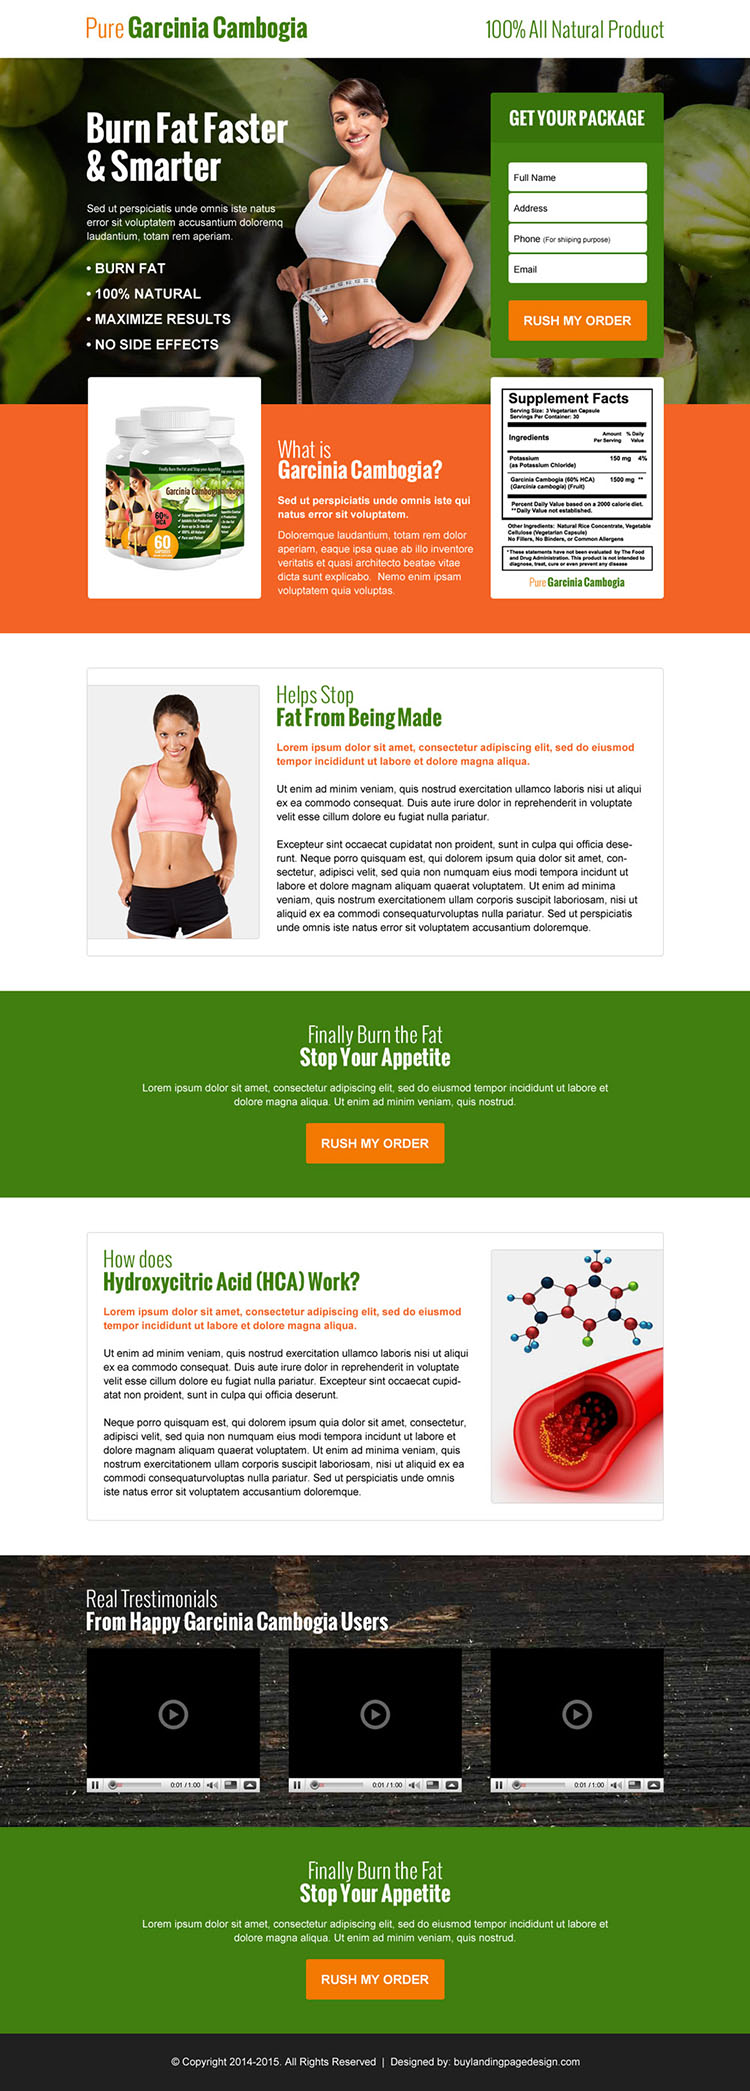 converting pure garcinia cambogia product lead capture landing page design